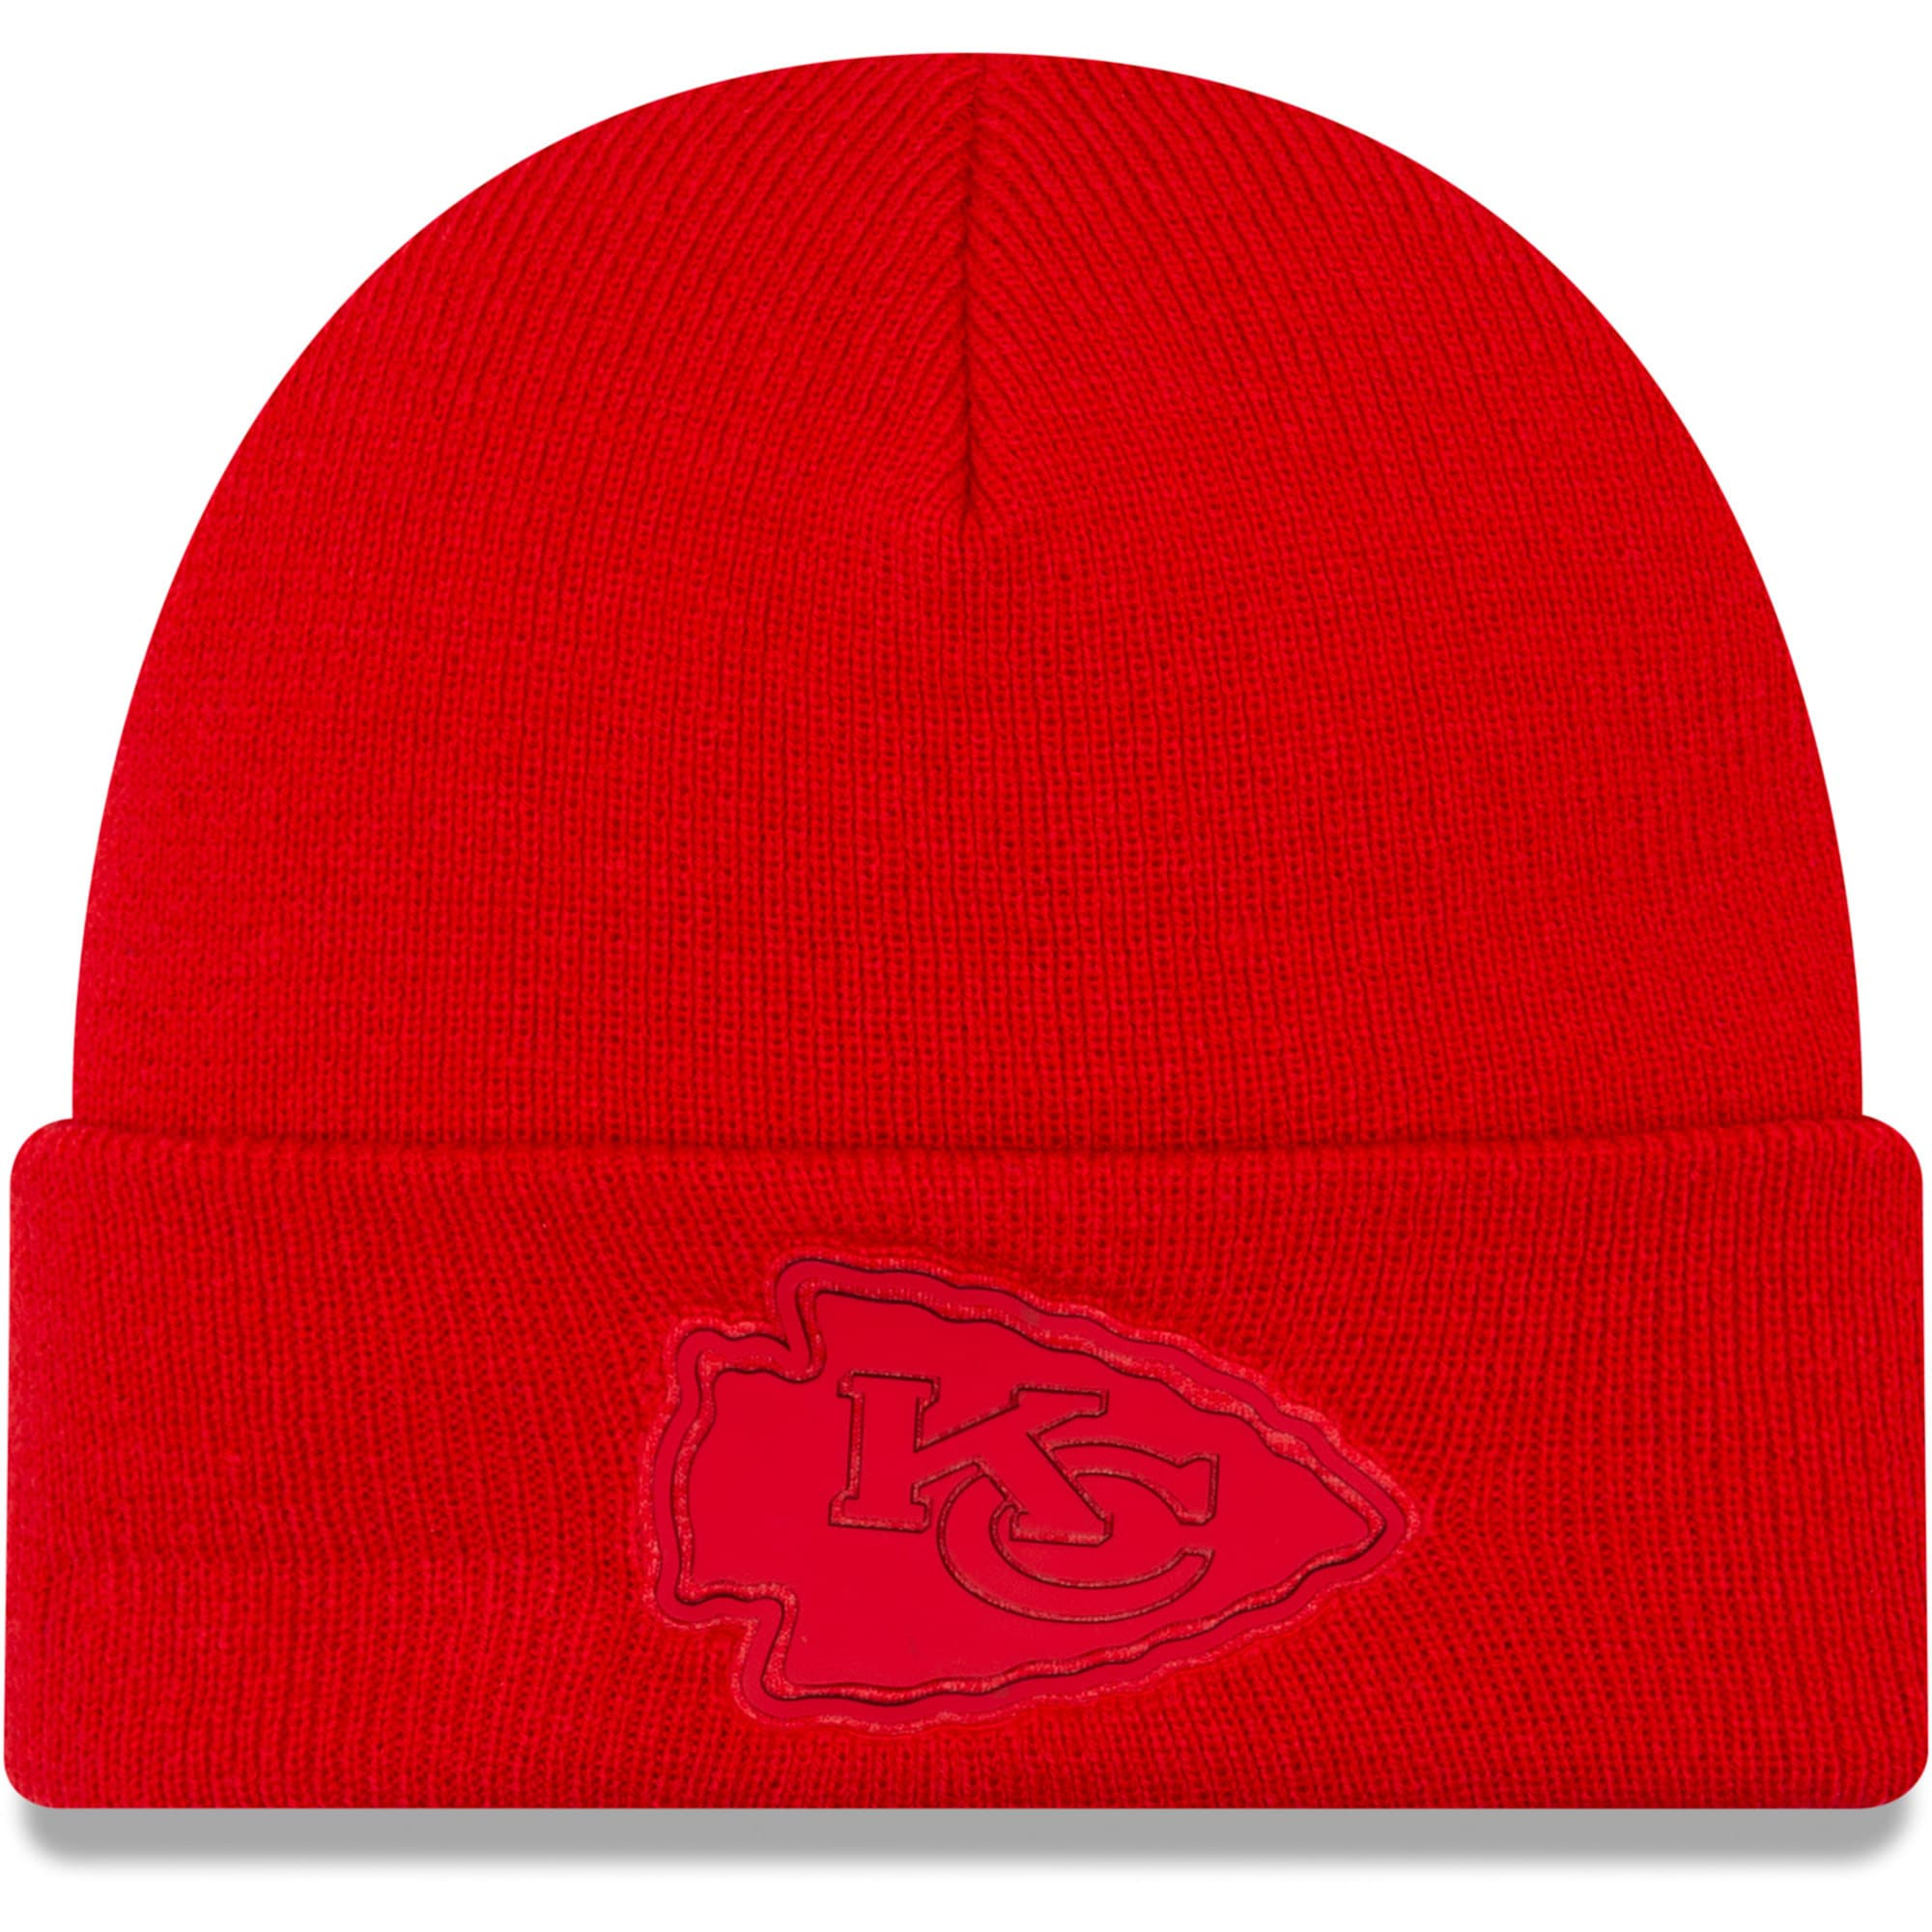 Kansas City Chiefs New Era Vivid Cuffed Knit Hat - Red